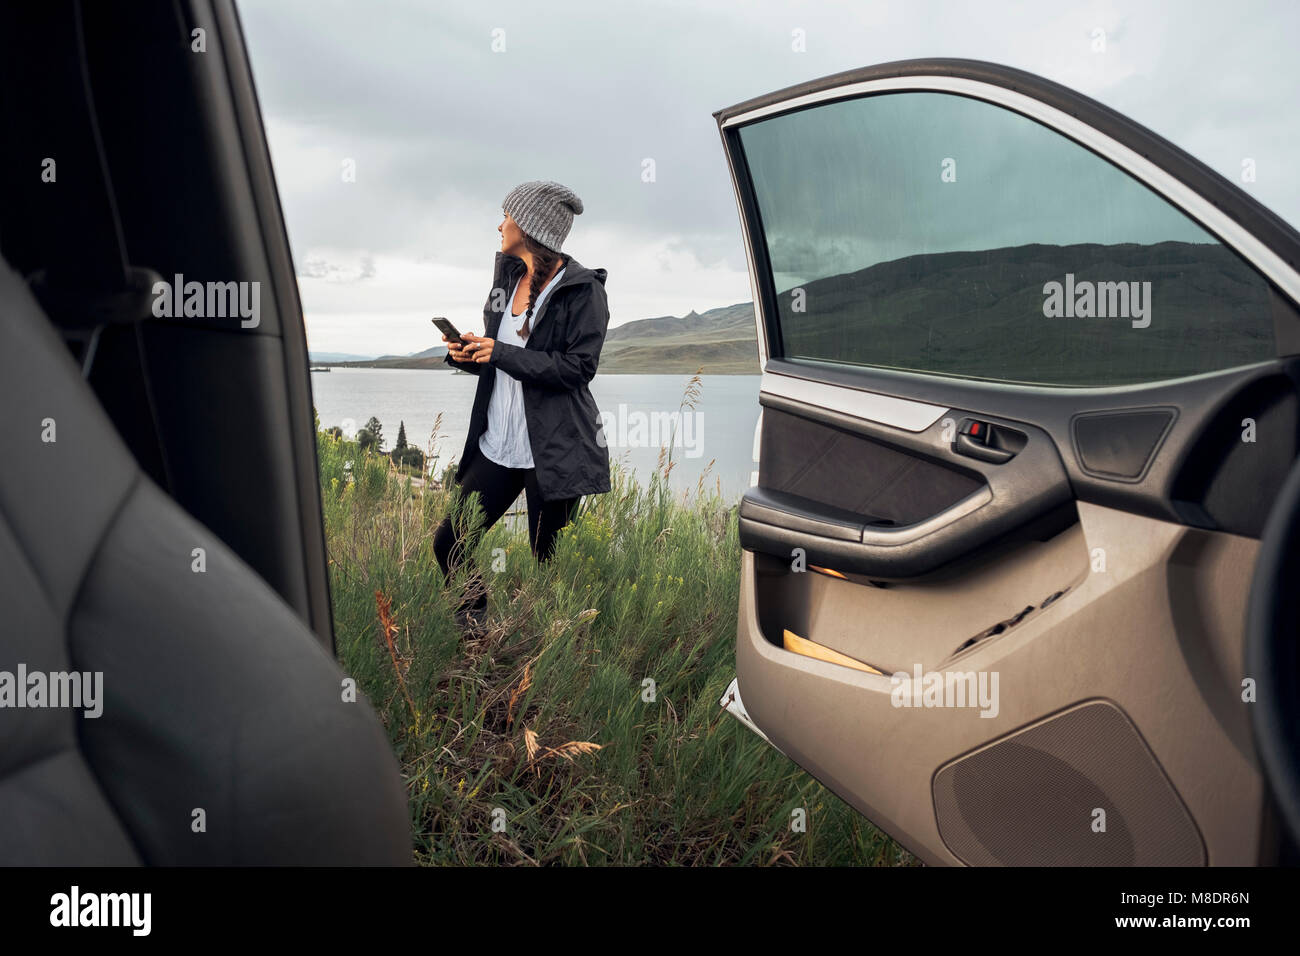 Young woman standing beside Dillon Reservoir, holding smartphone, view through parked car, Silverthorne, Colorado, - Stock Image